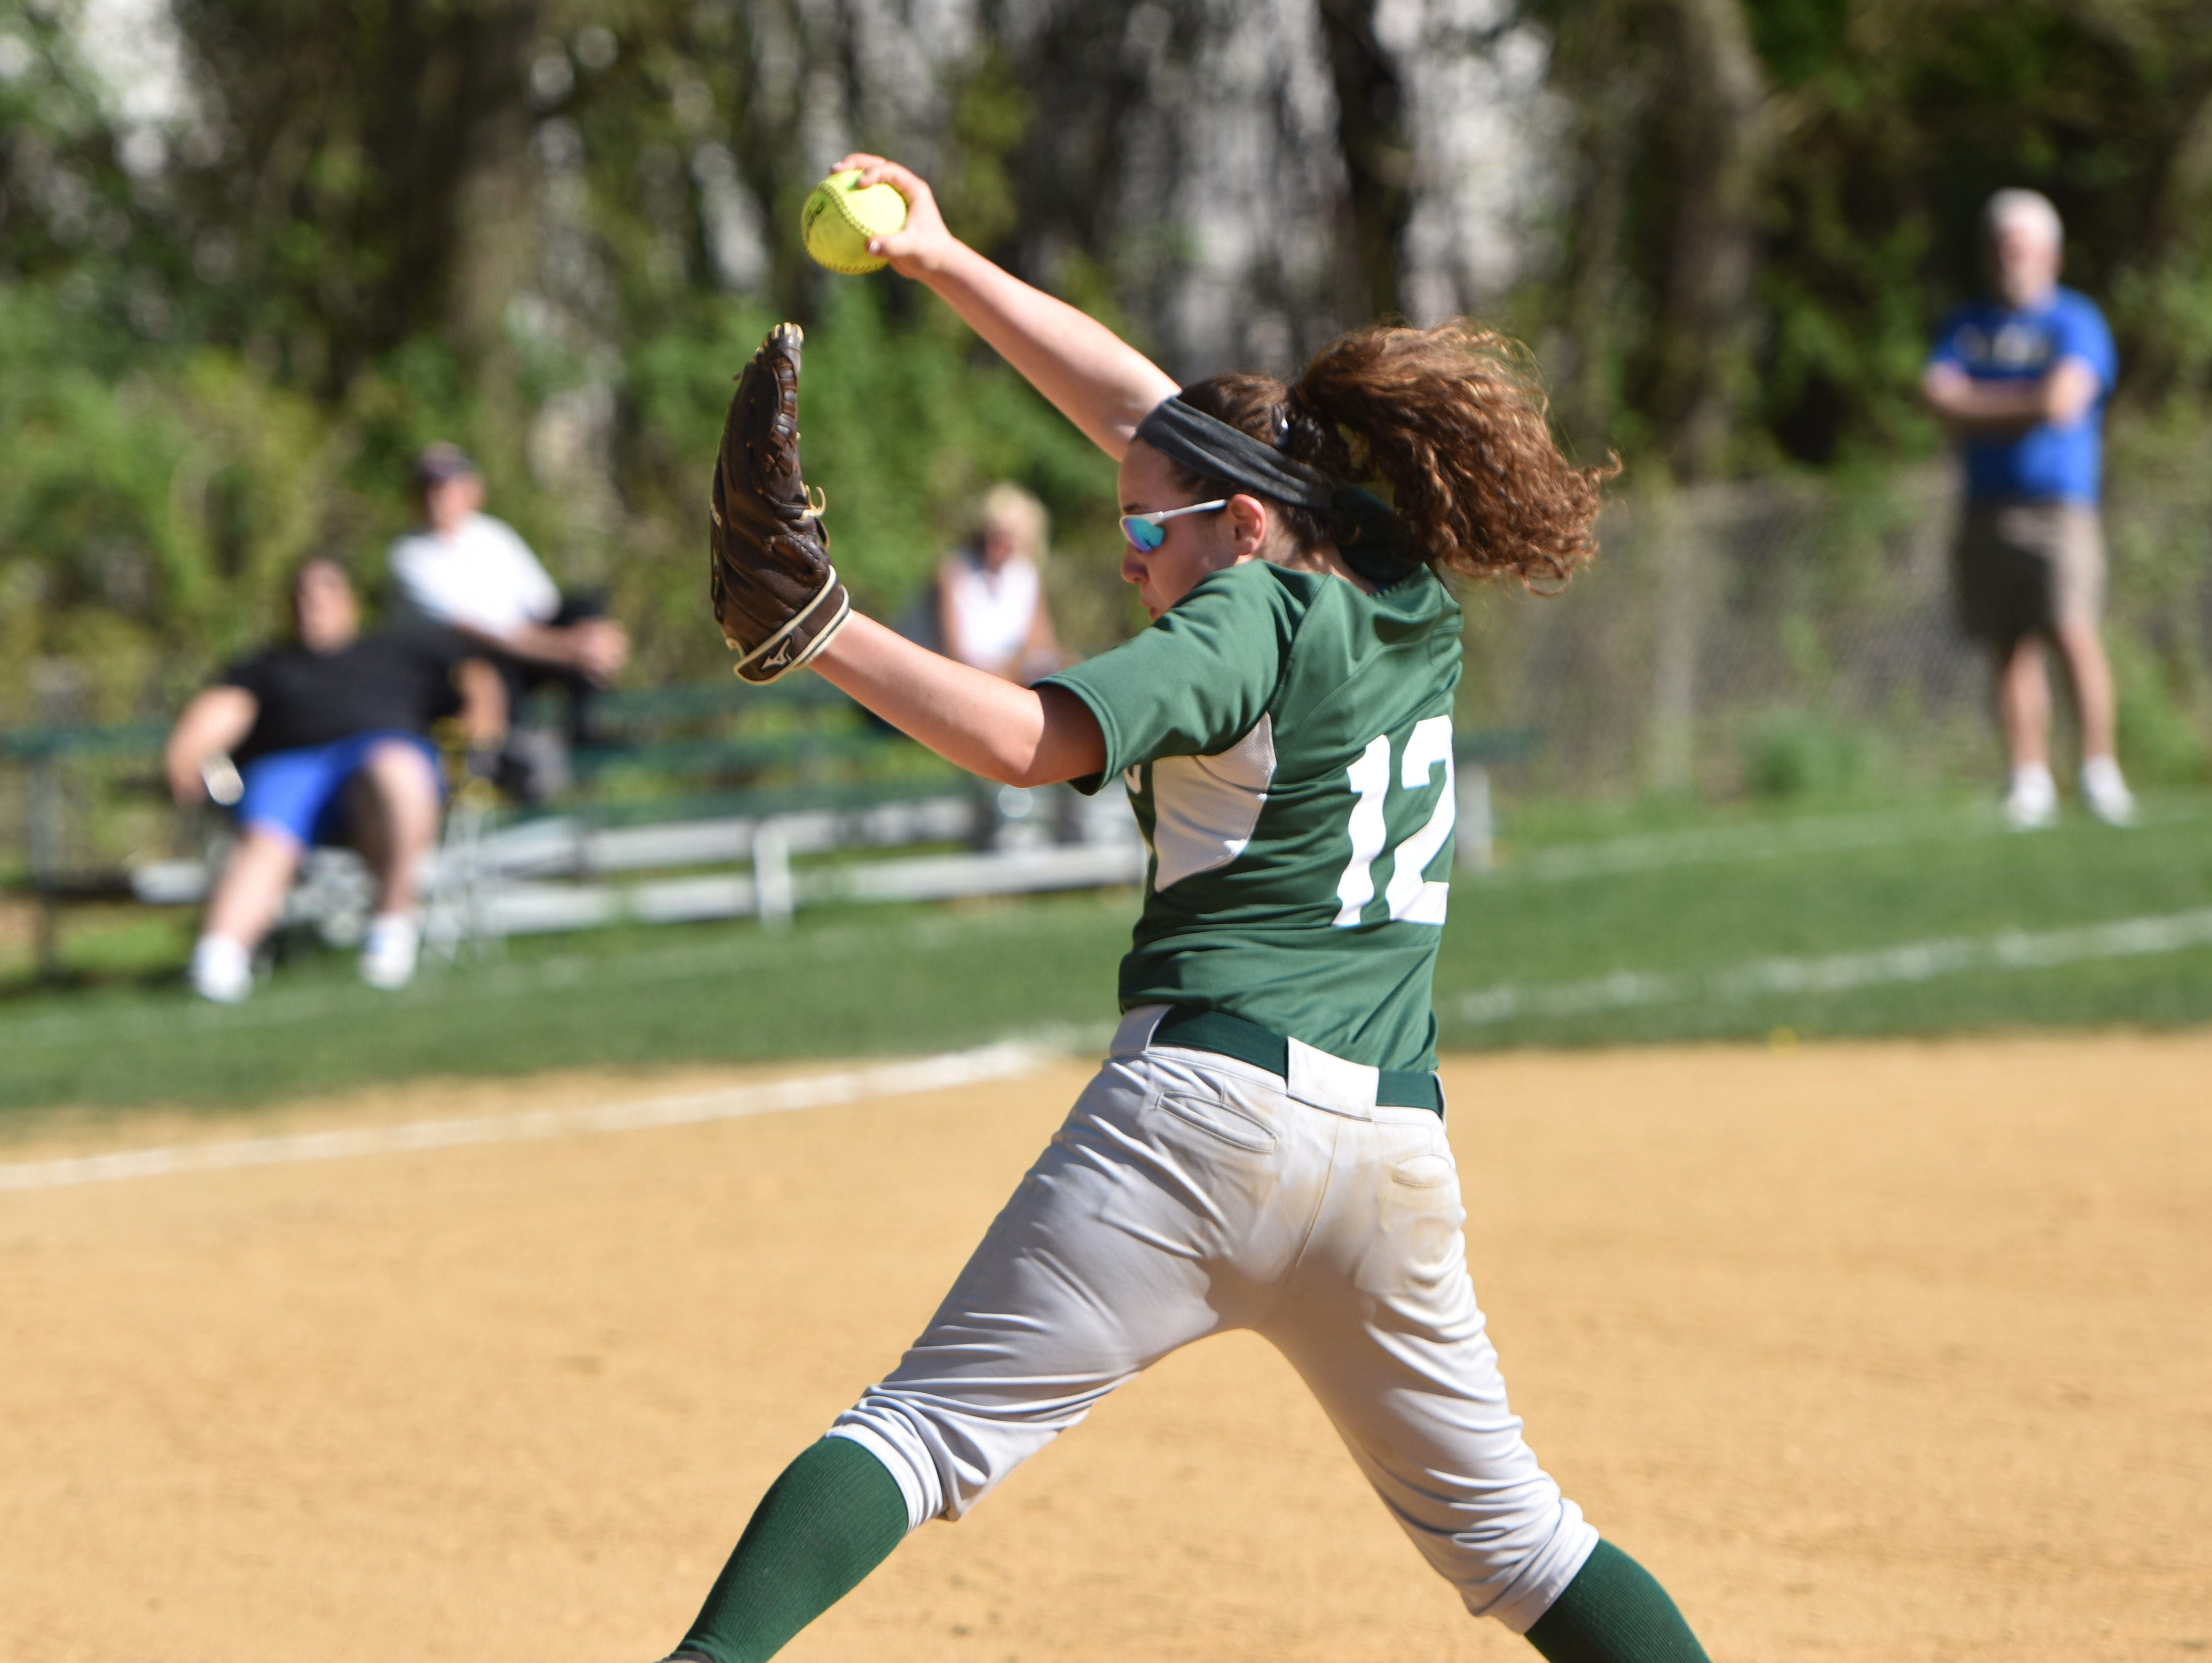 Spackenkill's Gabi Mastrantuono pitches during a May 7, 2015 game against Rhinebeck in Poughkeepsie.